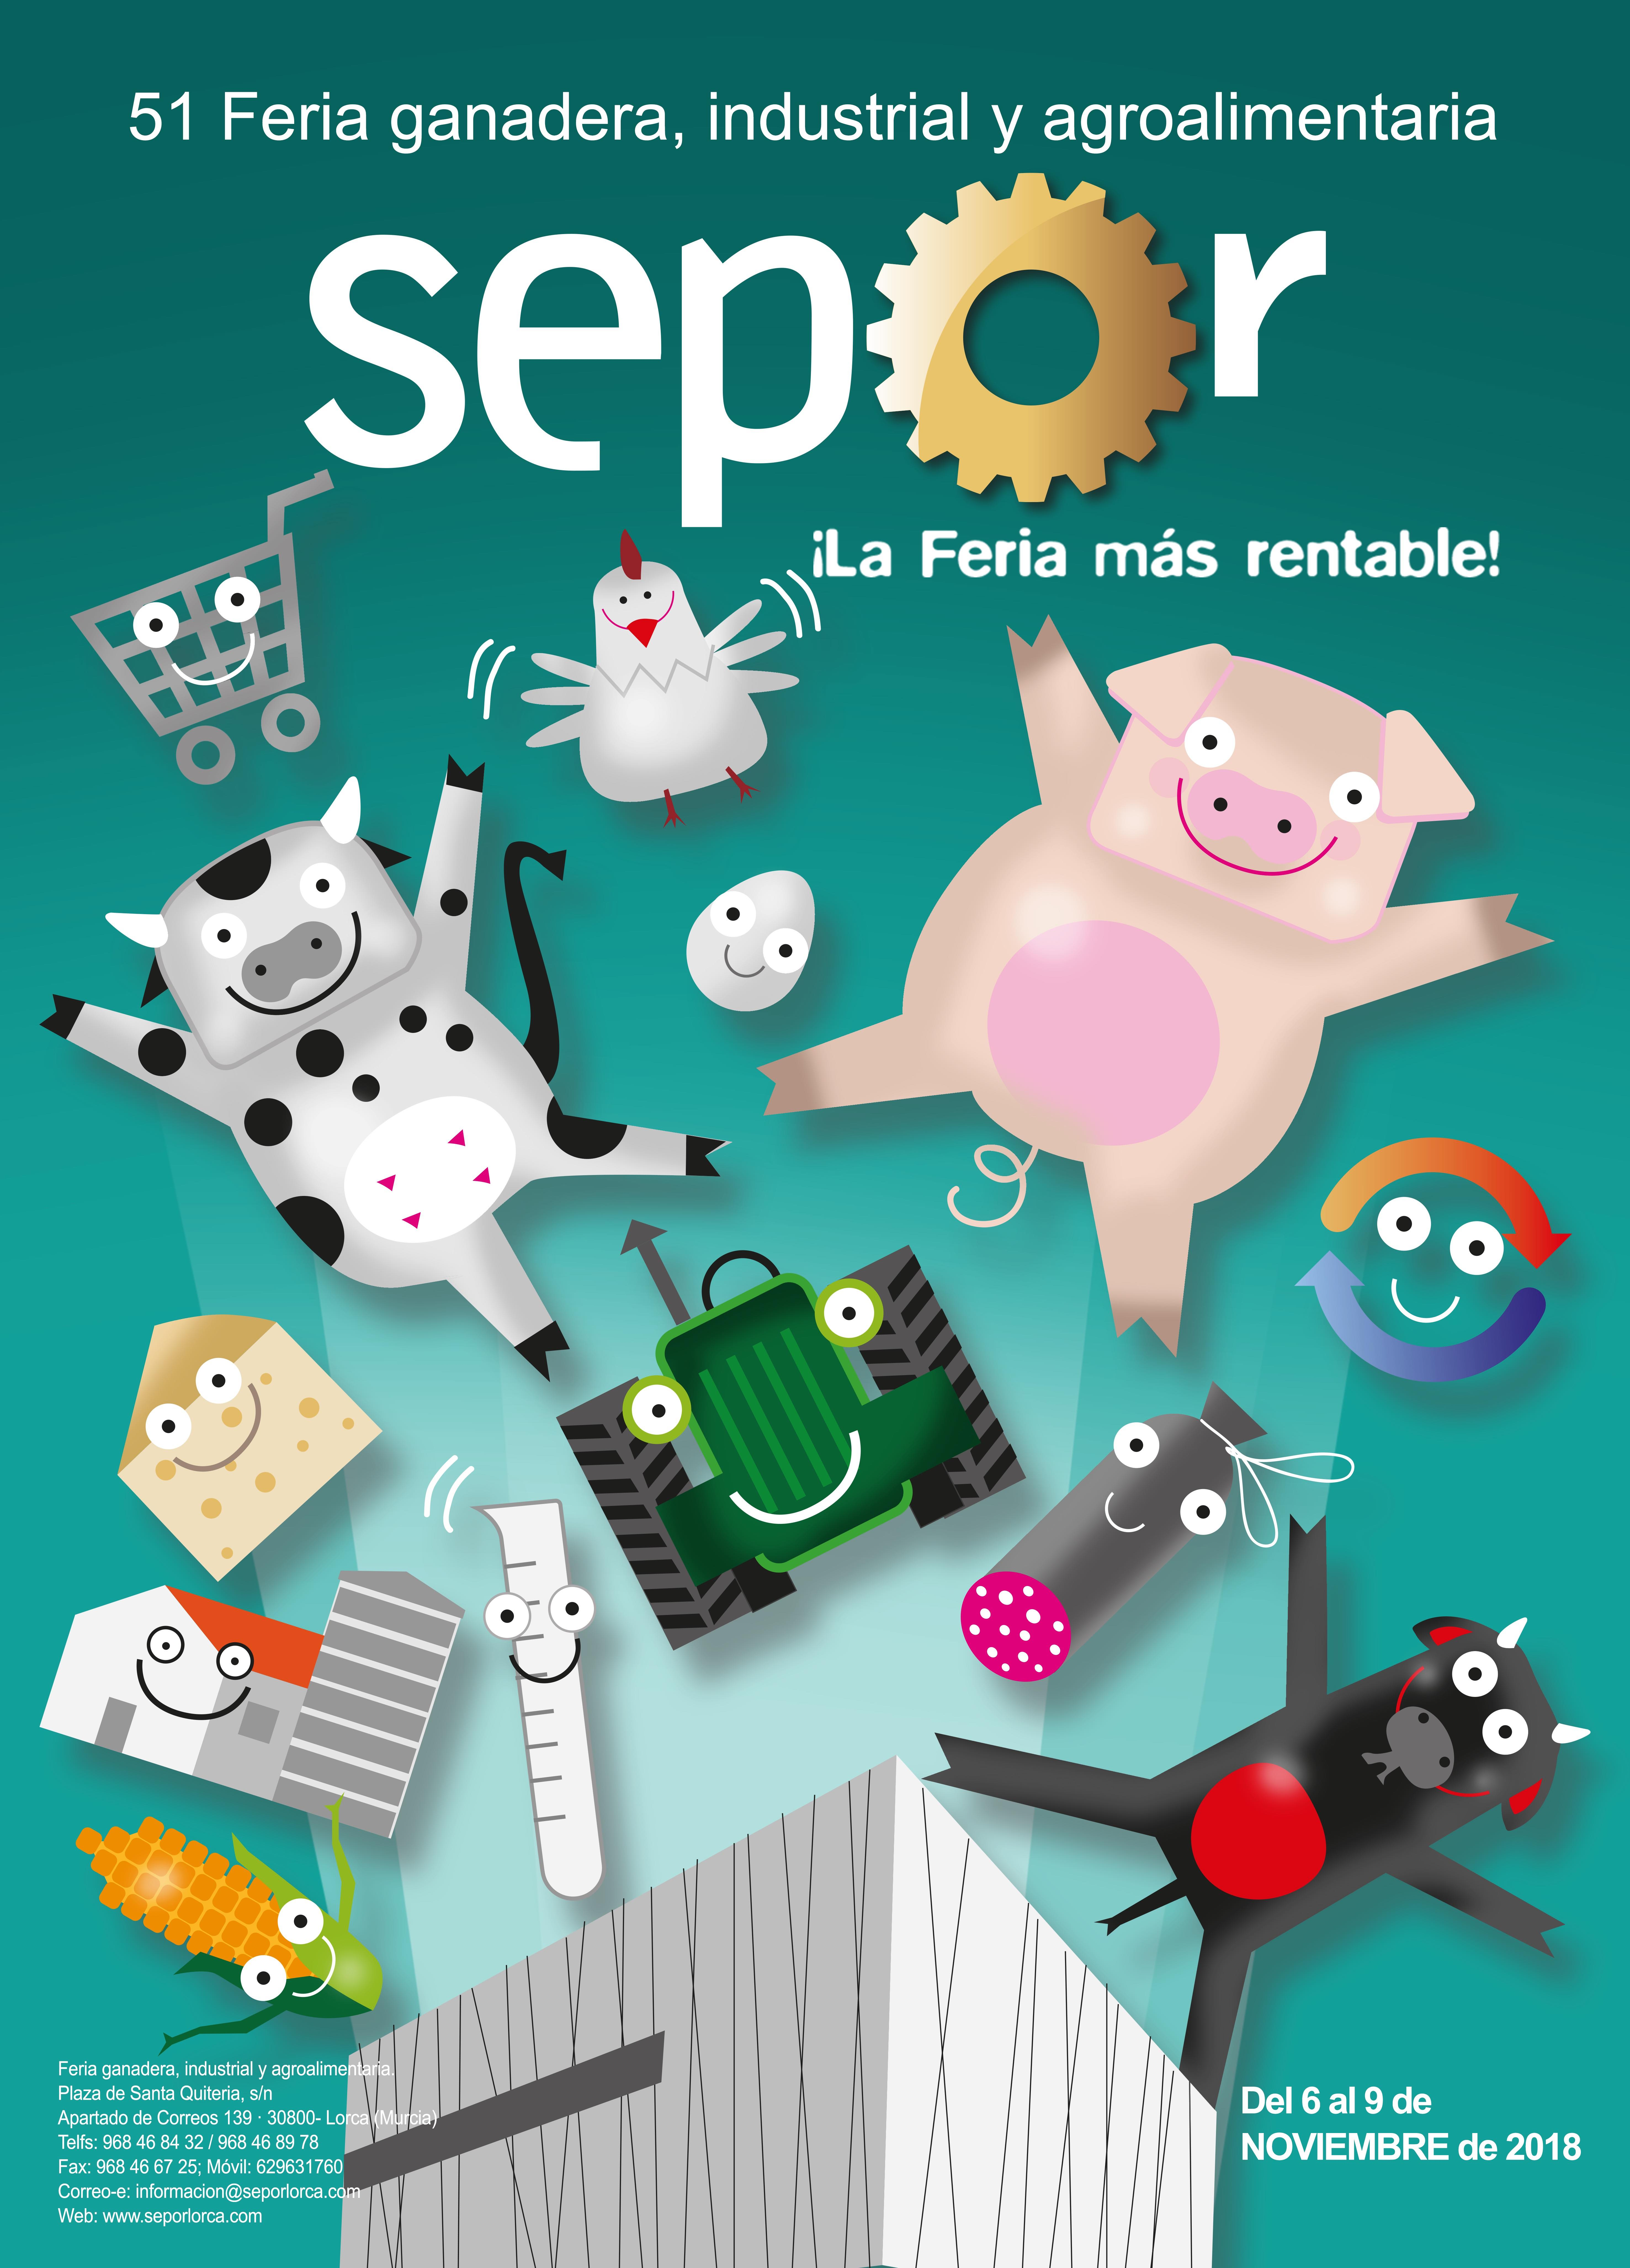 51 Edition of SEPOR, Cattle Fair, Industrial and Agro-food